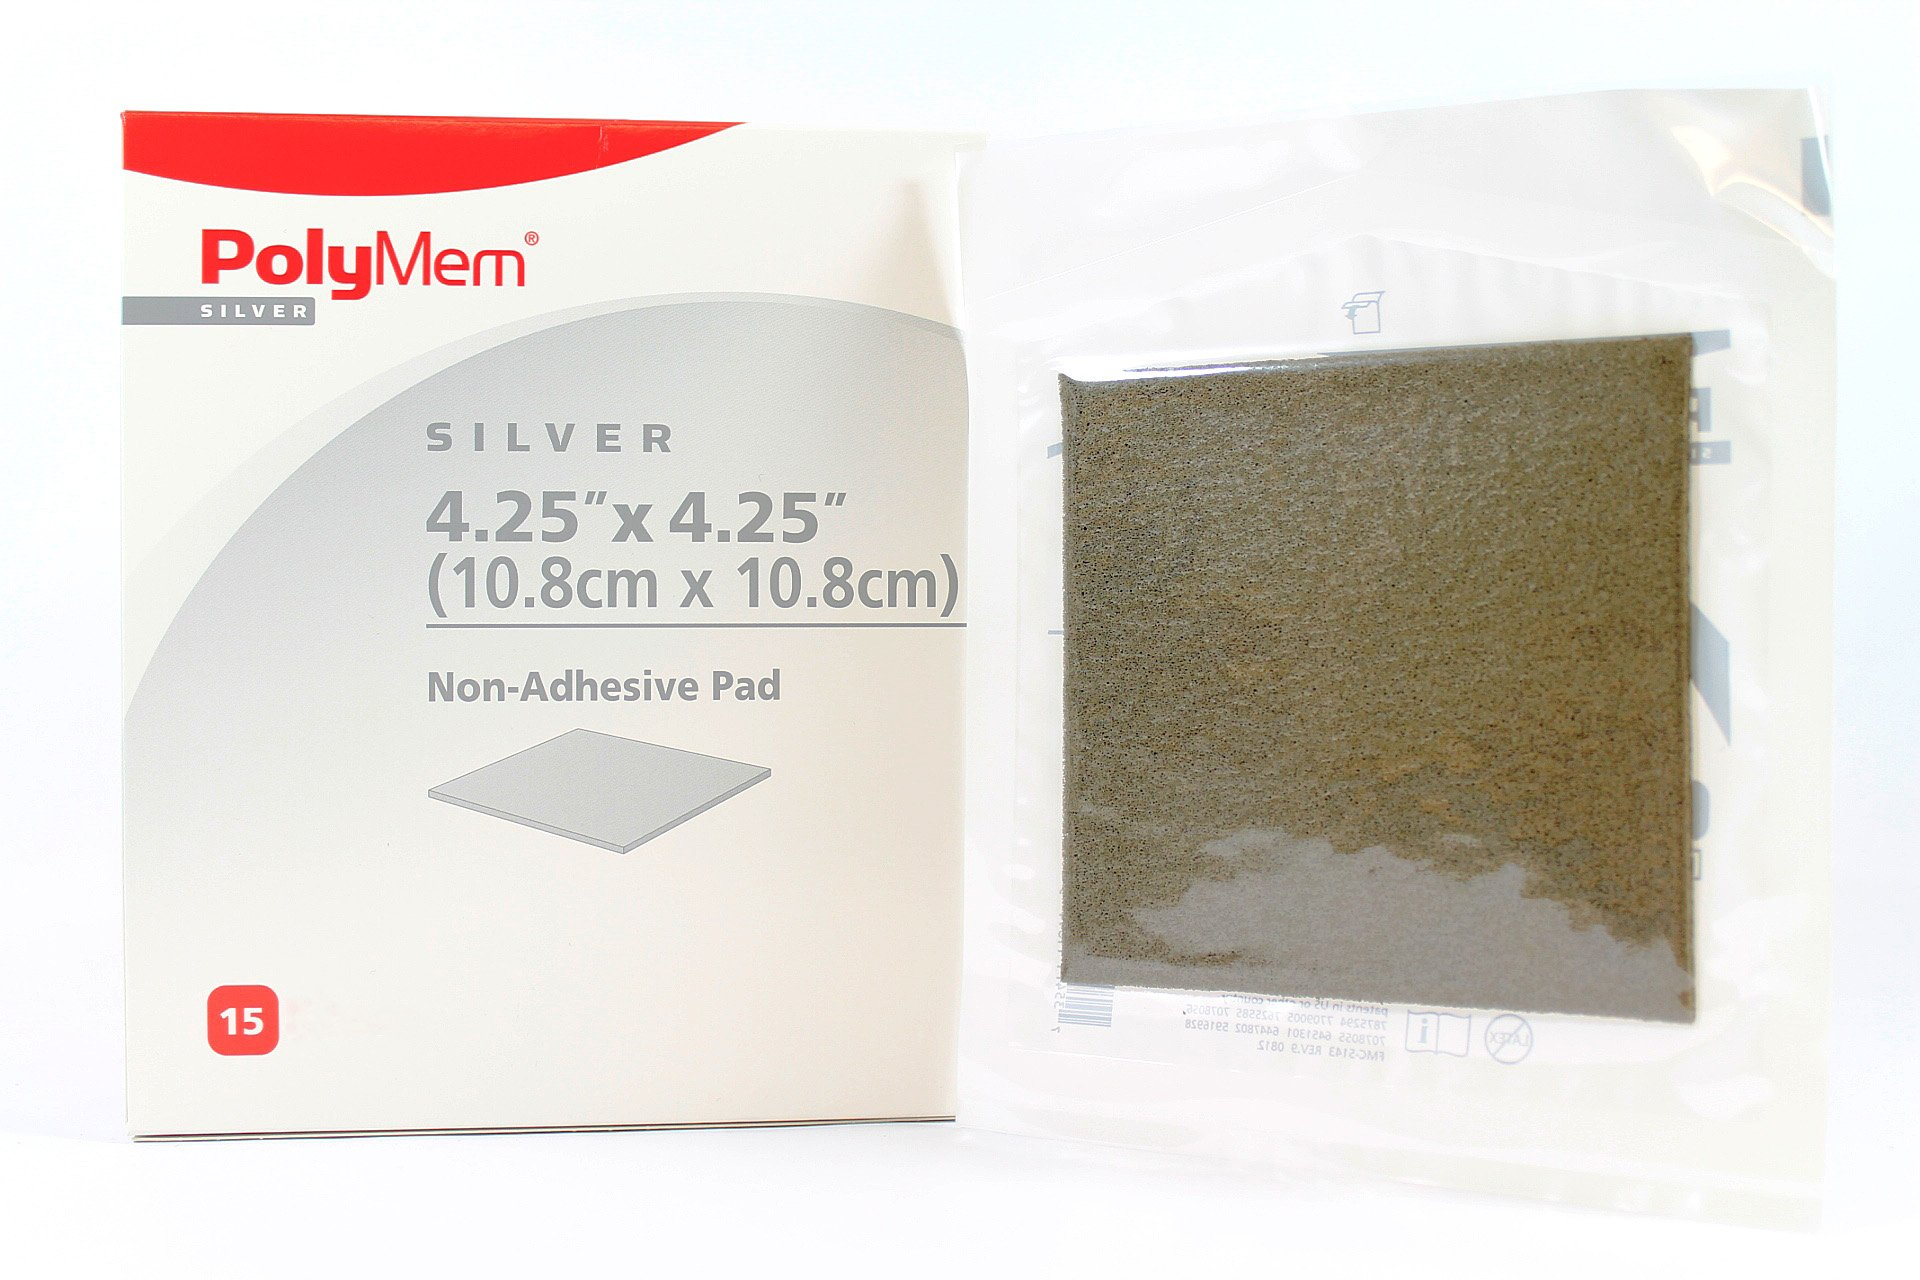 PolyMem Silv 1044 - Sterile Non-Adhesive Wound Dressing Pad - 4.25'' x 4.25'' - Box of 15